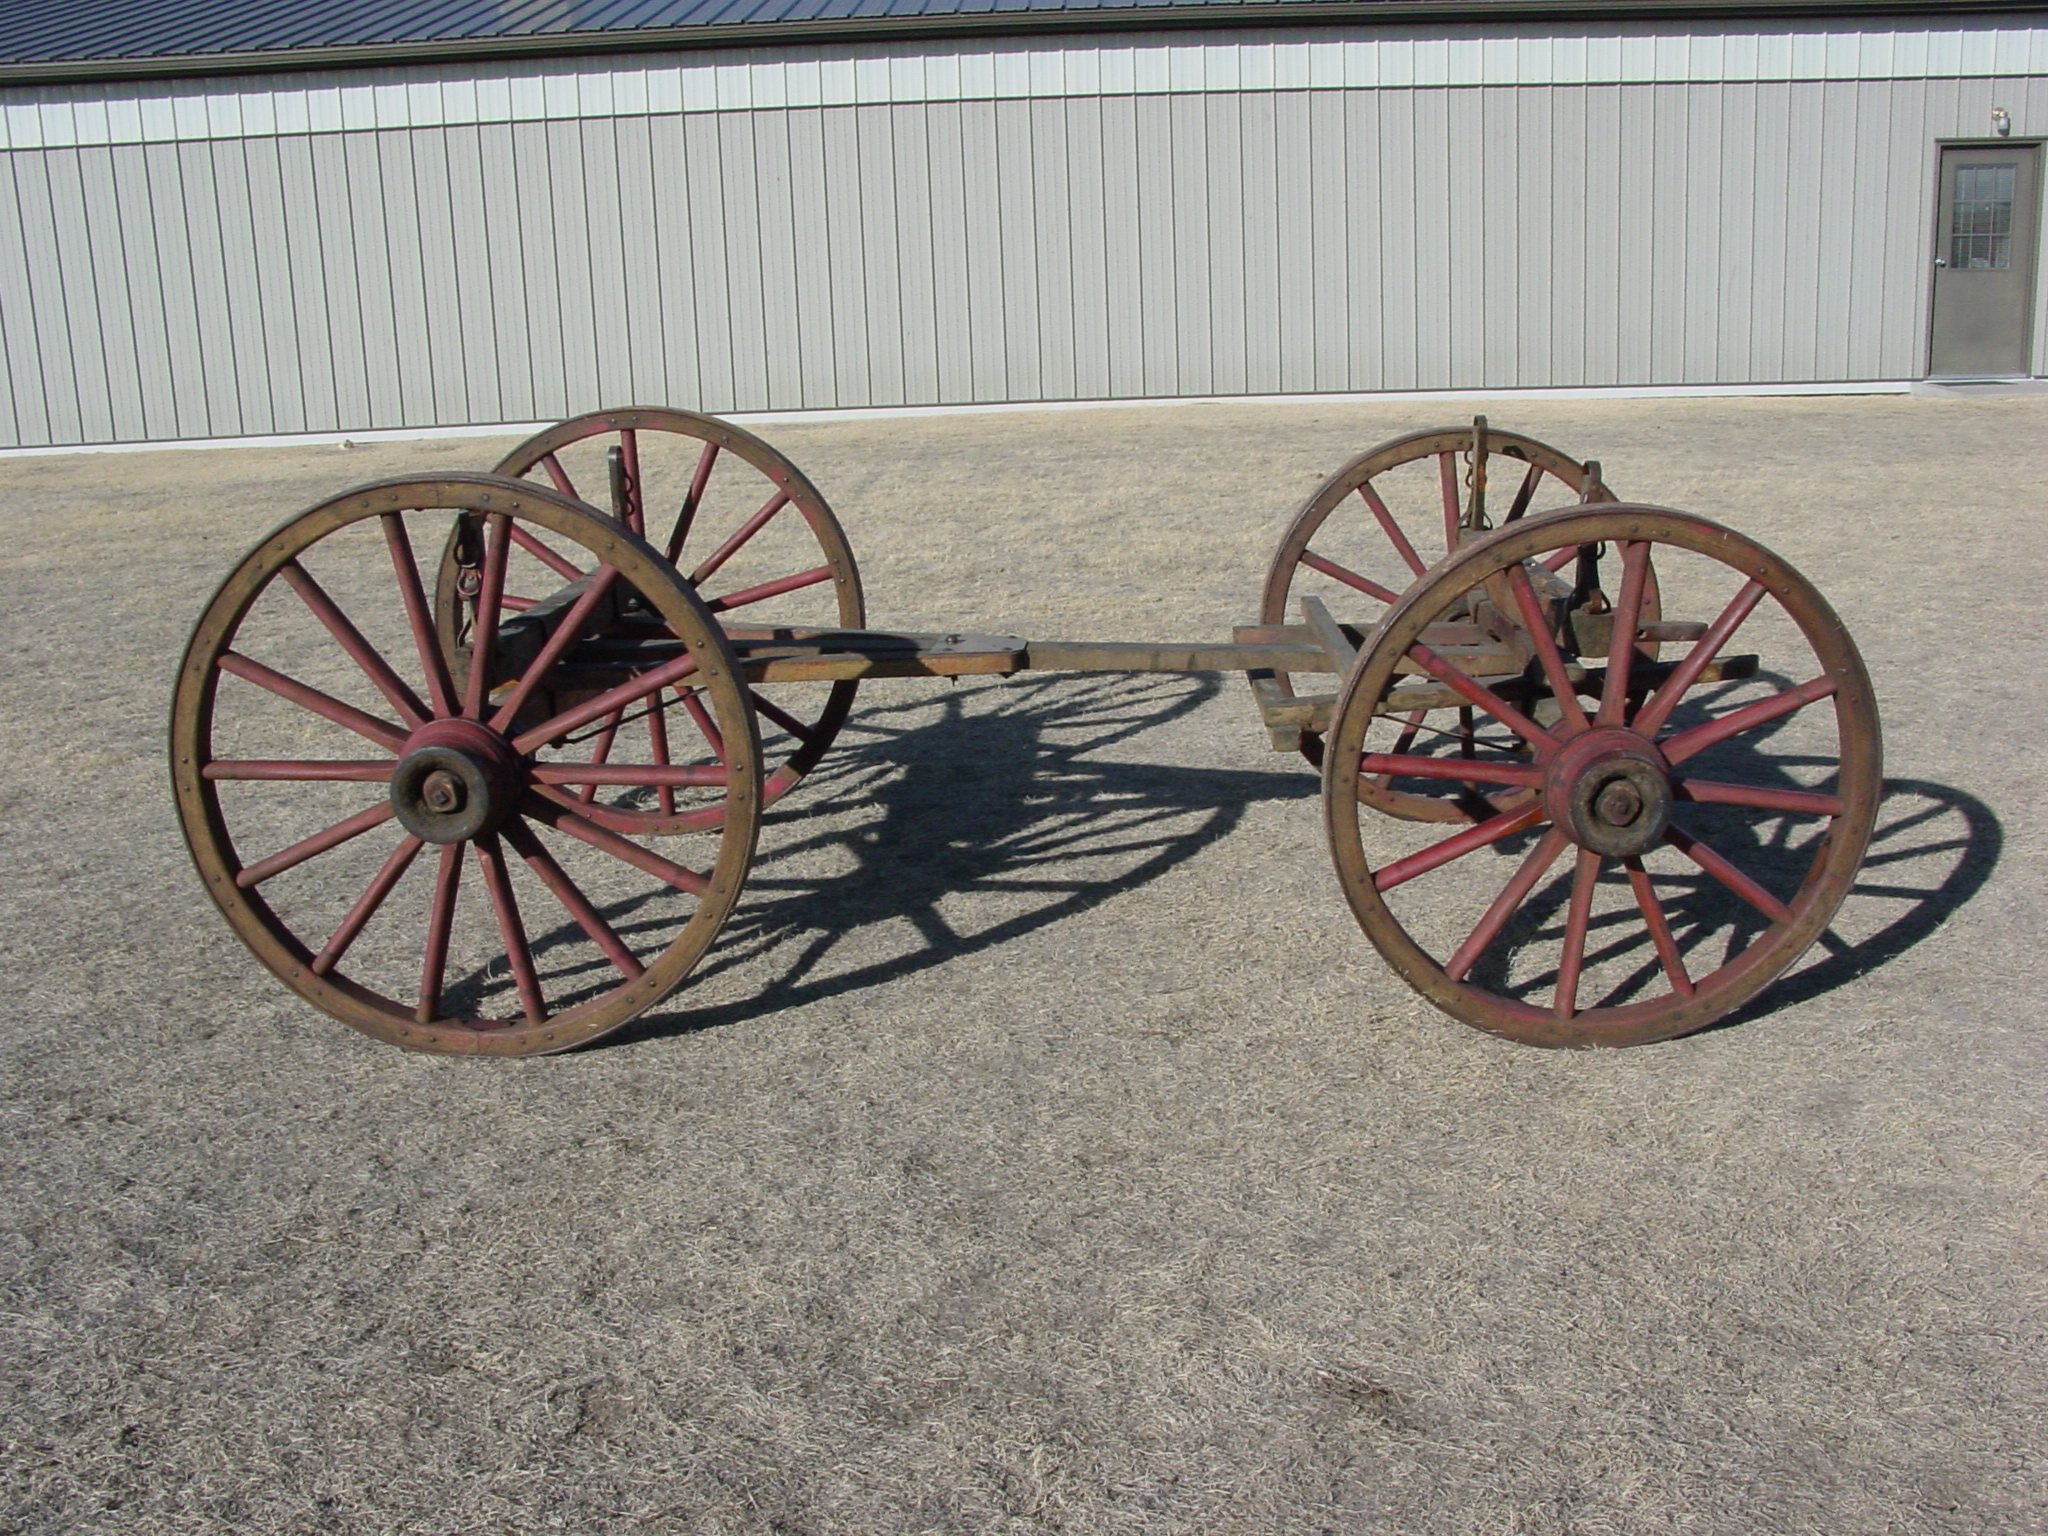 Antique Metal Cart-Antique Metal Cart Manufacturers, Suppliers and